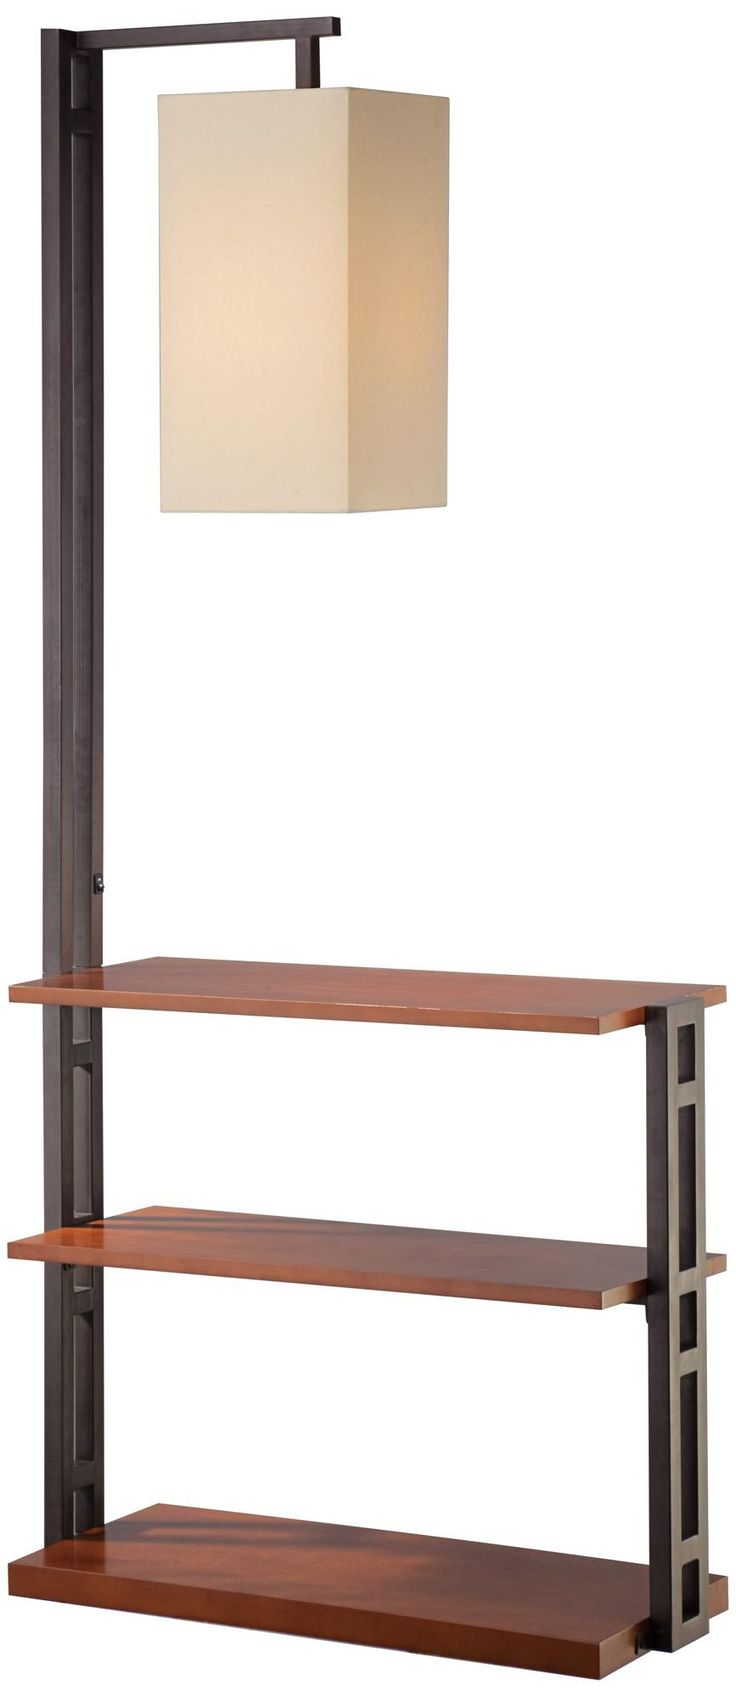 Triple Shelf Floor Lamp With Beige Linen Shade R2598 Lamps Plus Floor Lamp With Shelves Floor Lamp Shelf Lamp